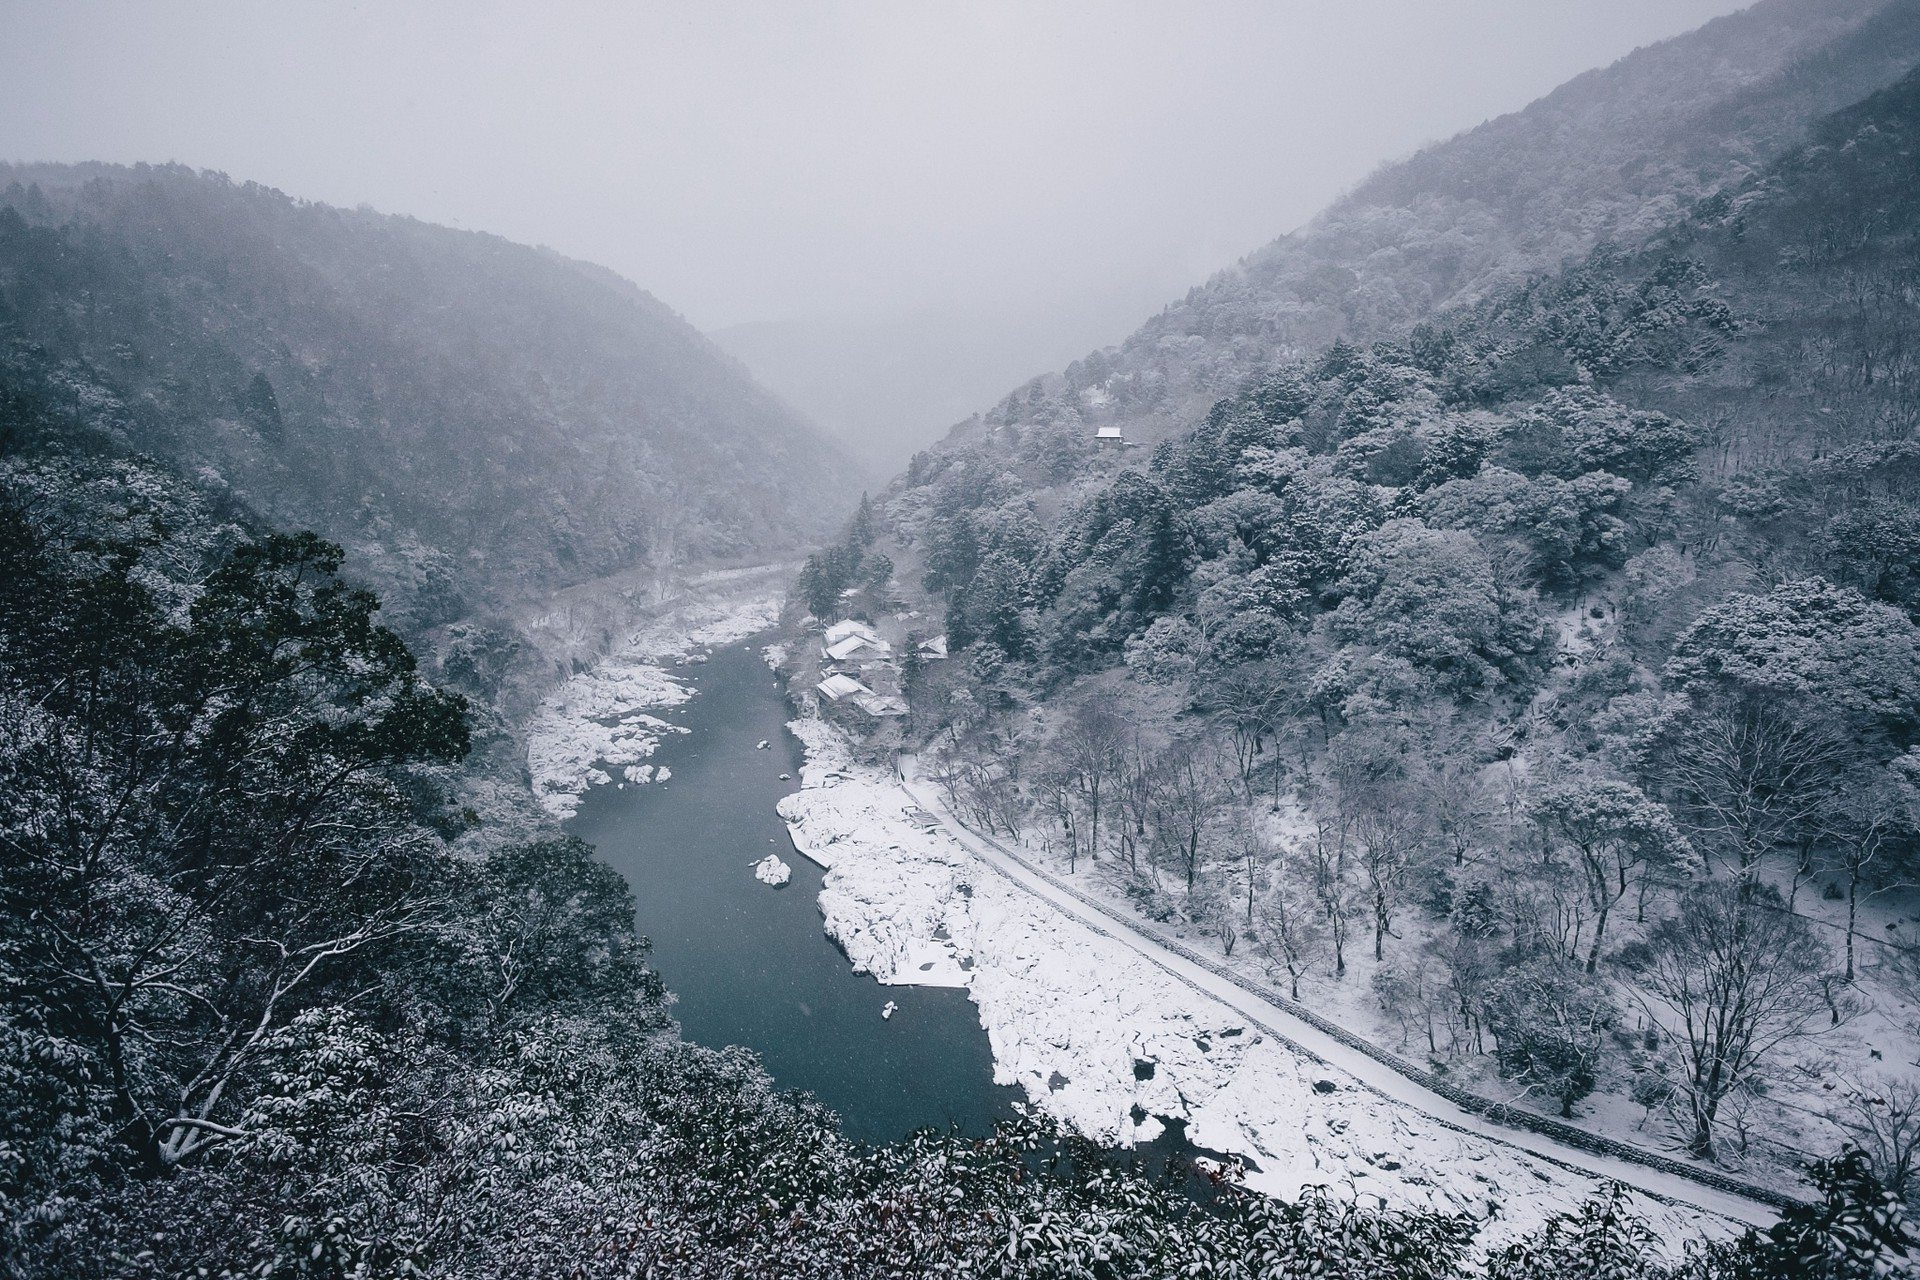 nature, Landscape, River, Winter, Mountain, Forest, Snow, Trees, Mist, Japan  Wallpapers HD / Desktop and Mobile Backgrounds